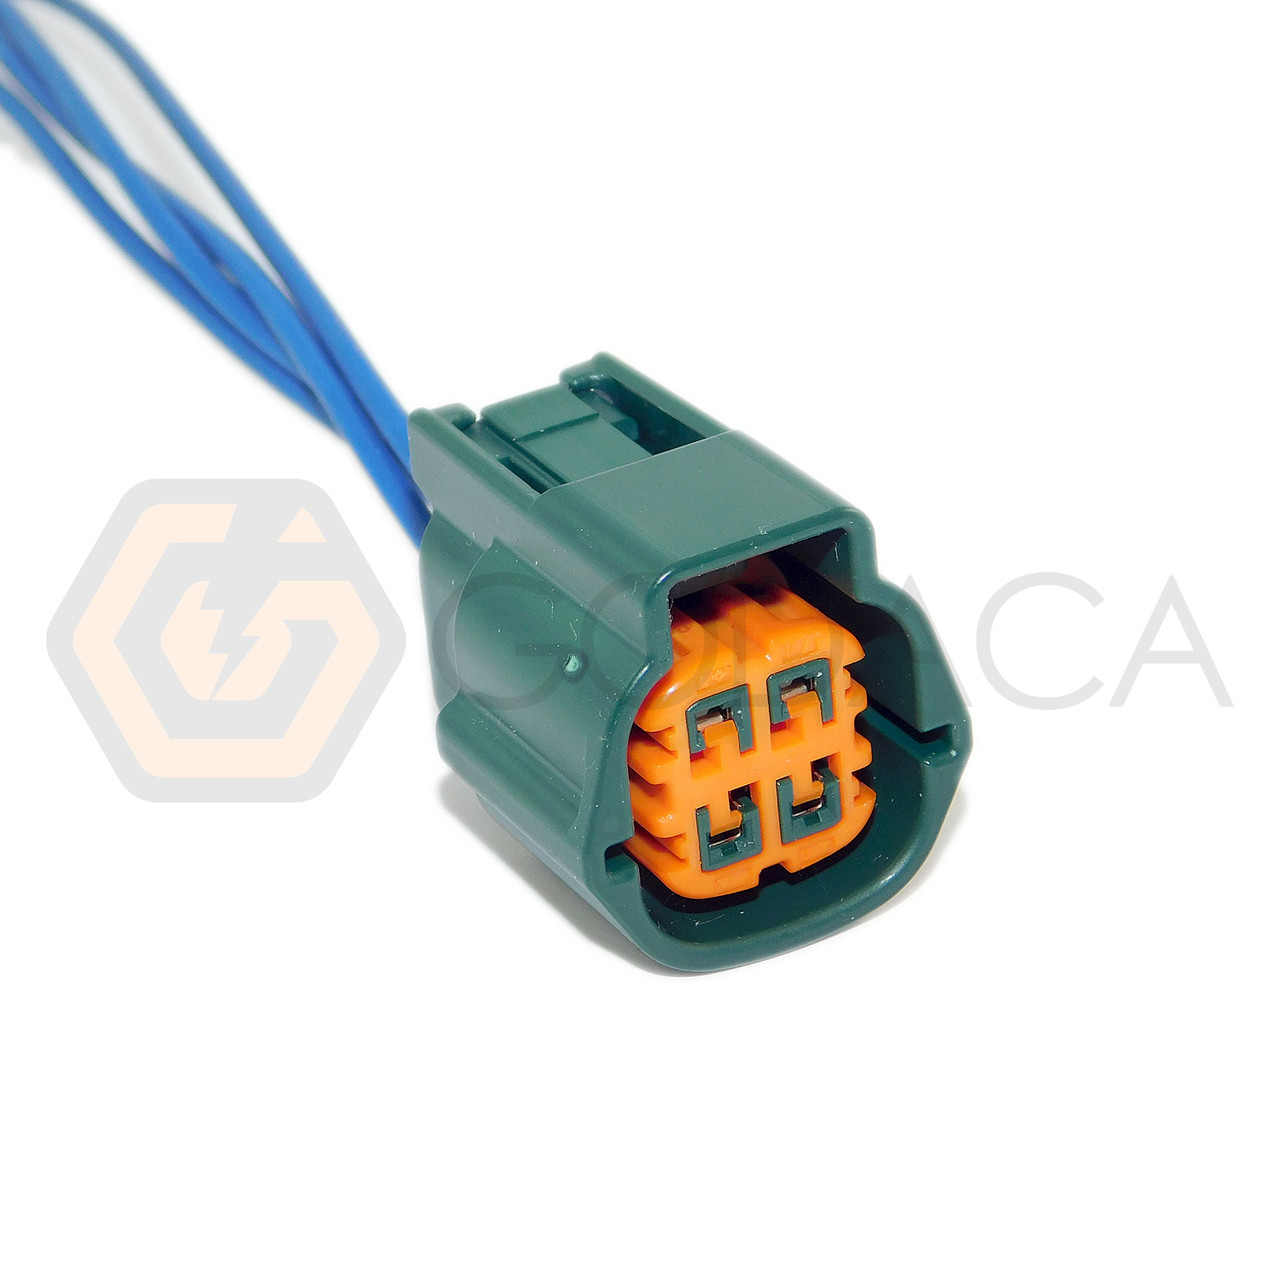 medium resolution of 1x connector 4 pin 4 way for o2 sensor subaru nissan rs04fg godaca llc